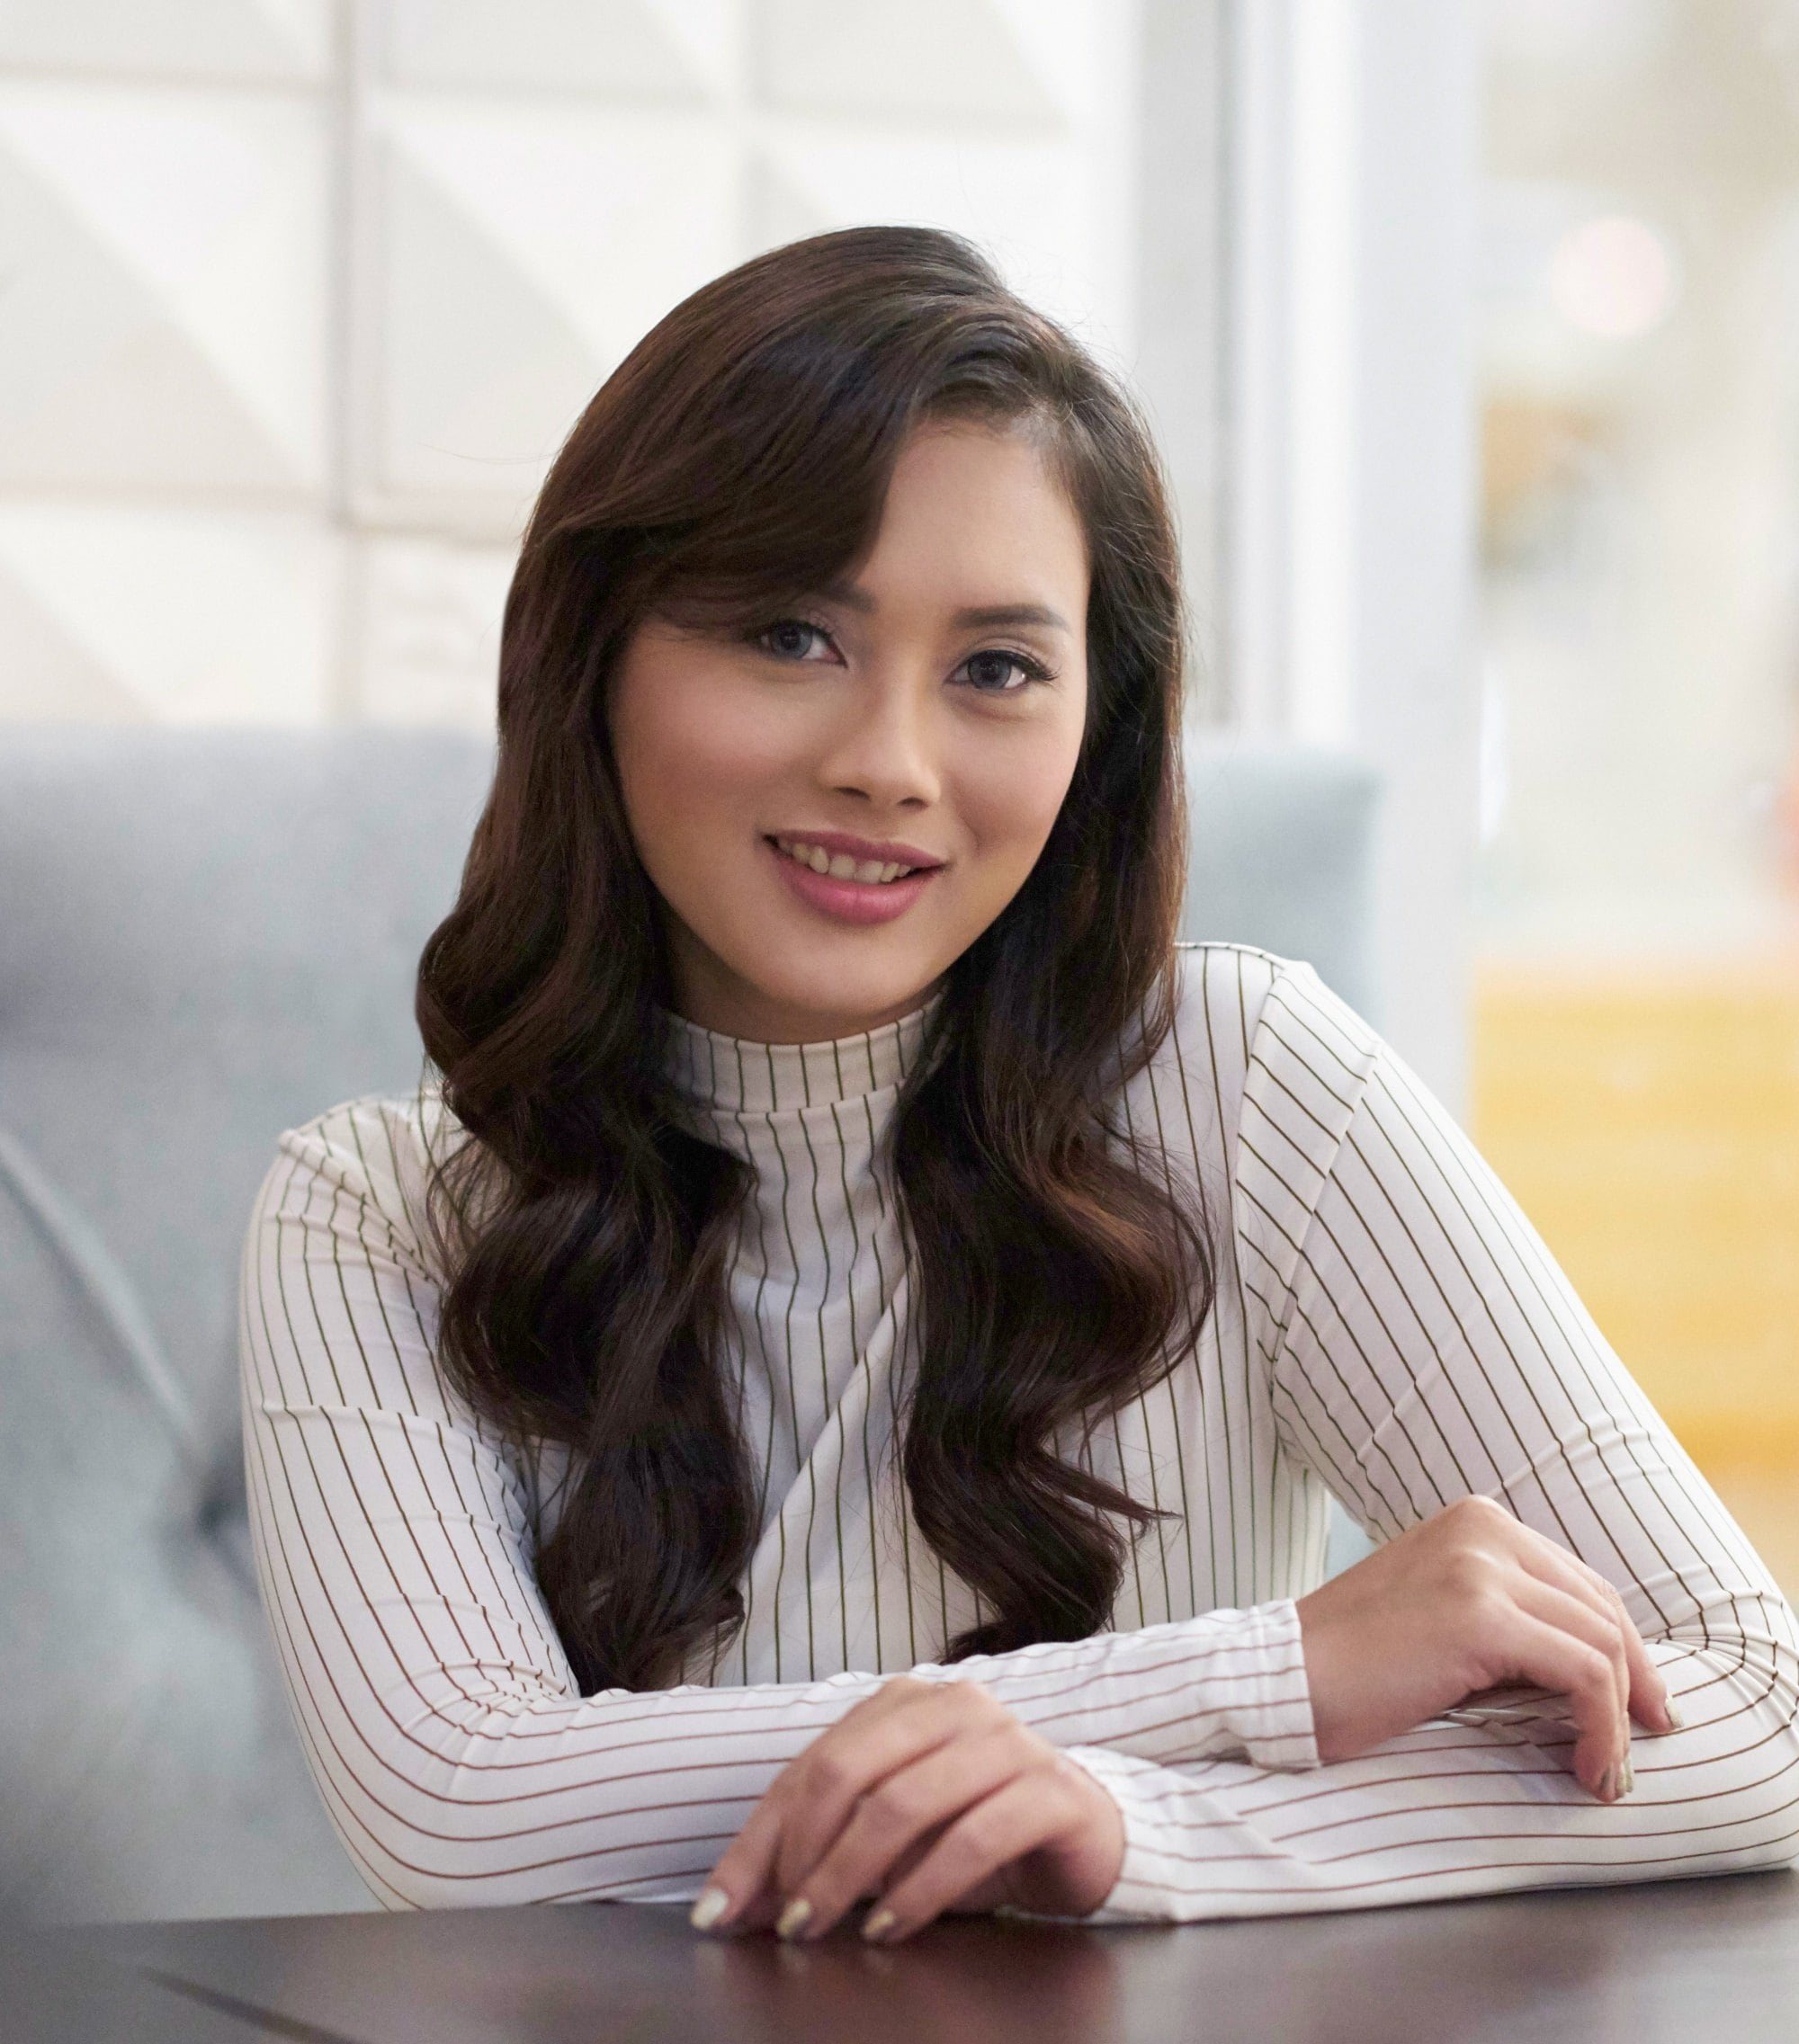 Heat protectant spray: Closeup shot of an Asian woman with long dark wavy hair wearing a white long-sleeved top in a cafe